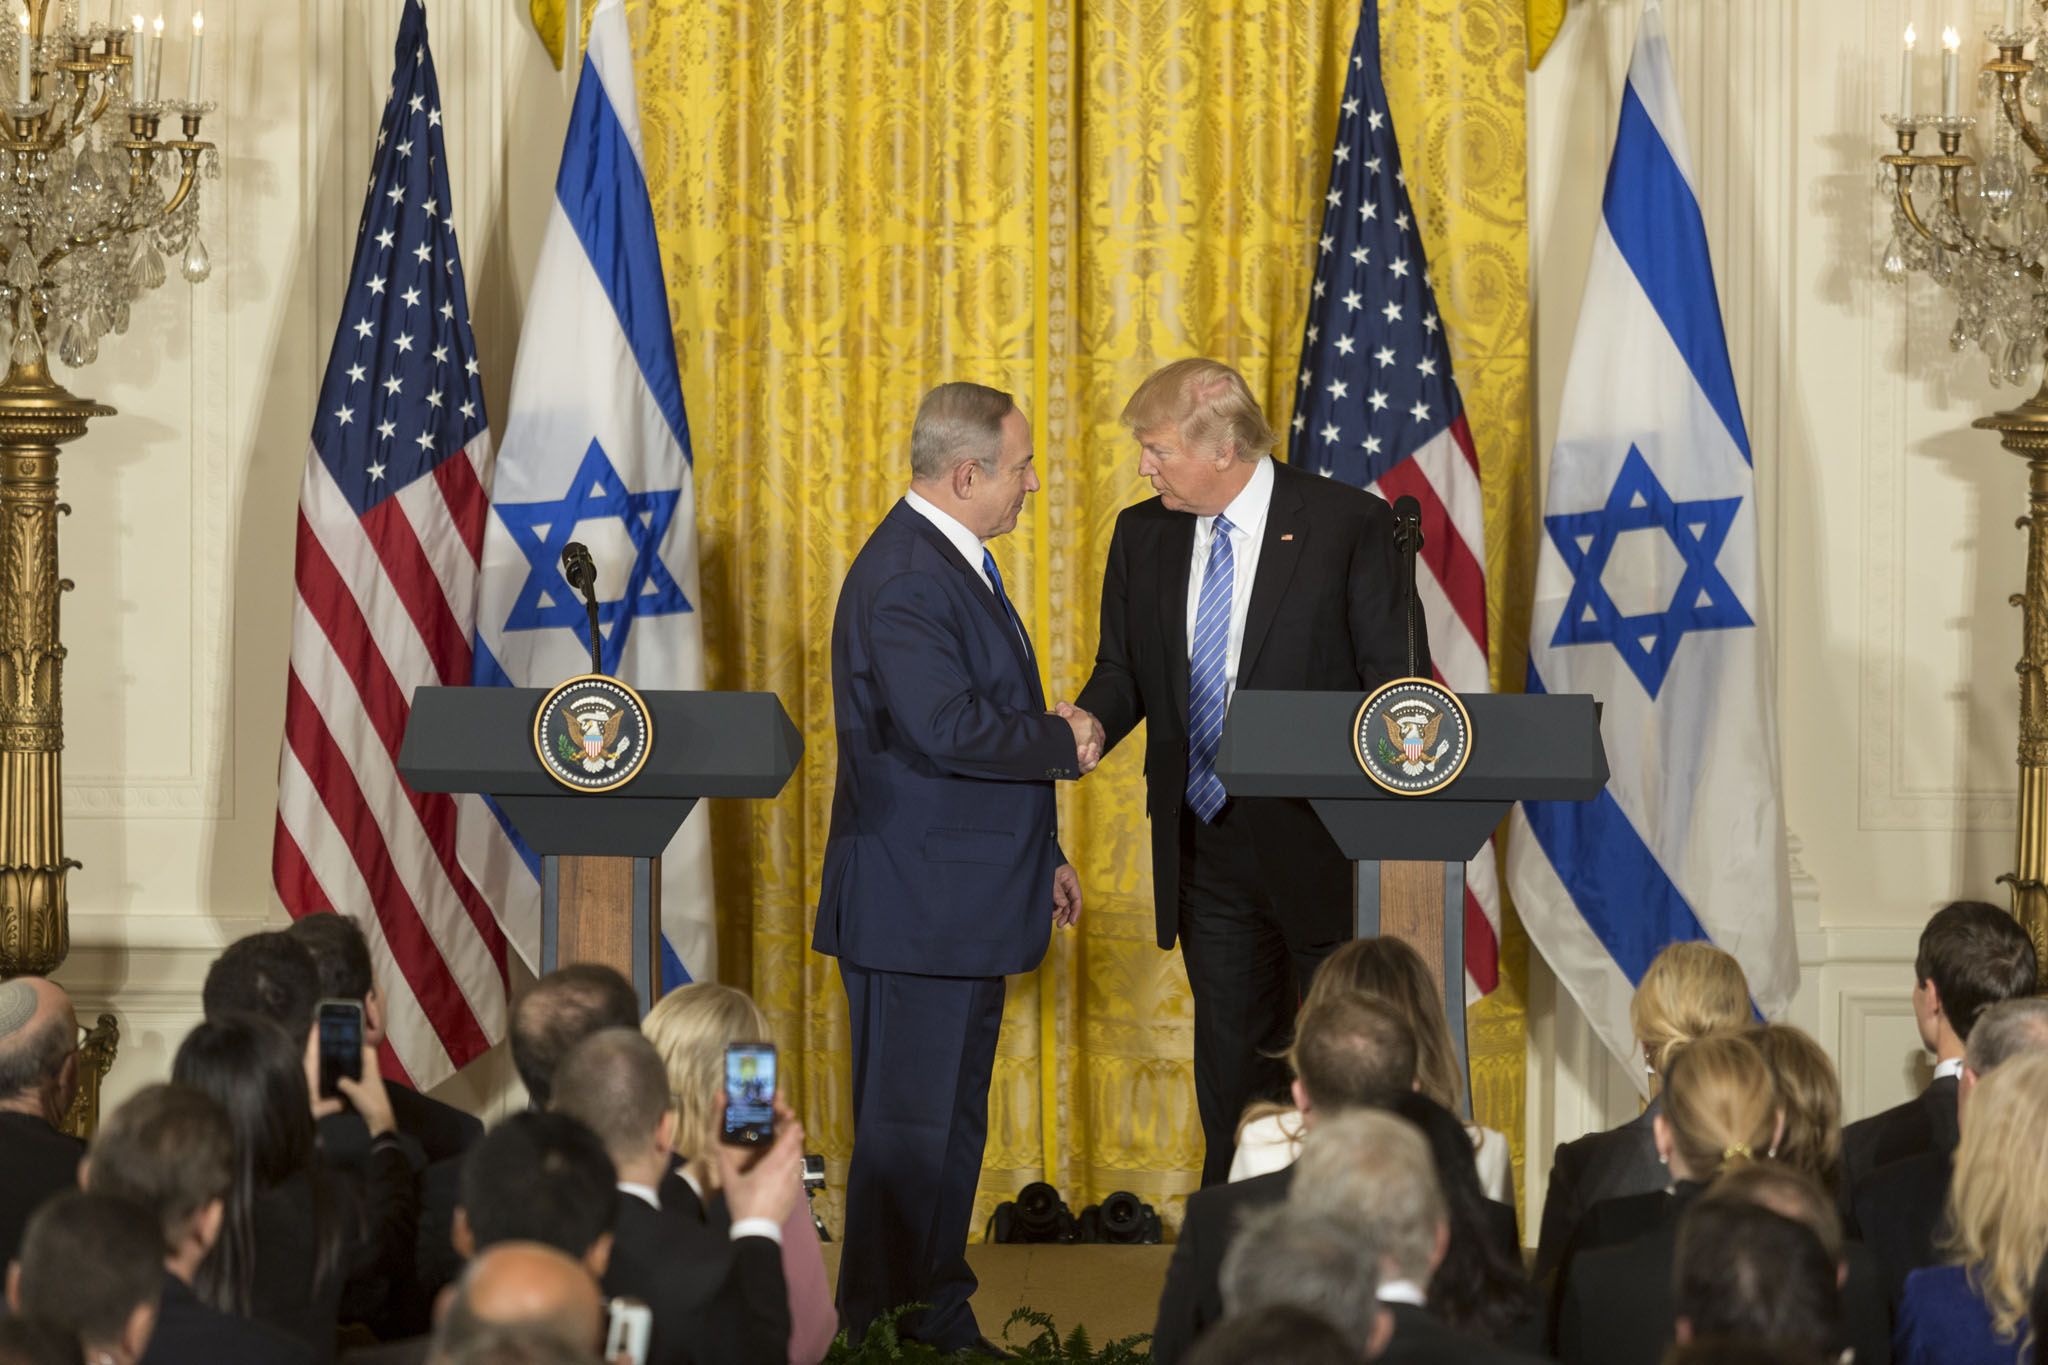 Trump shaking hands with Israeli Prime Minister Benjamin Netanyahu. Photo courtesy of The White House.